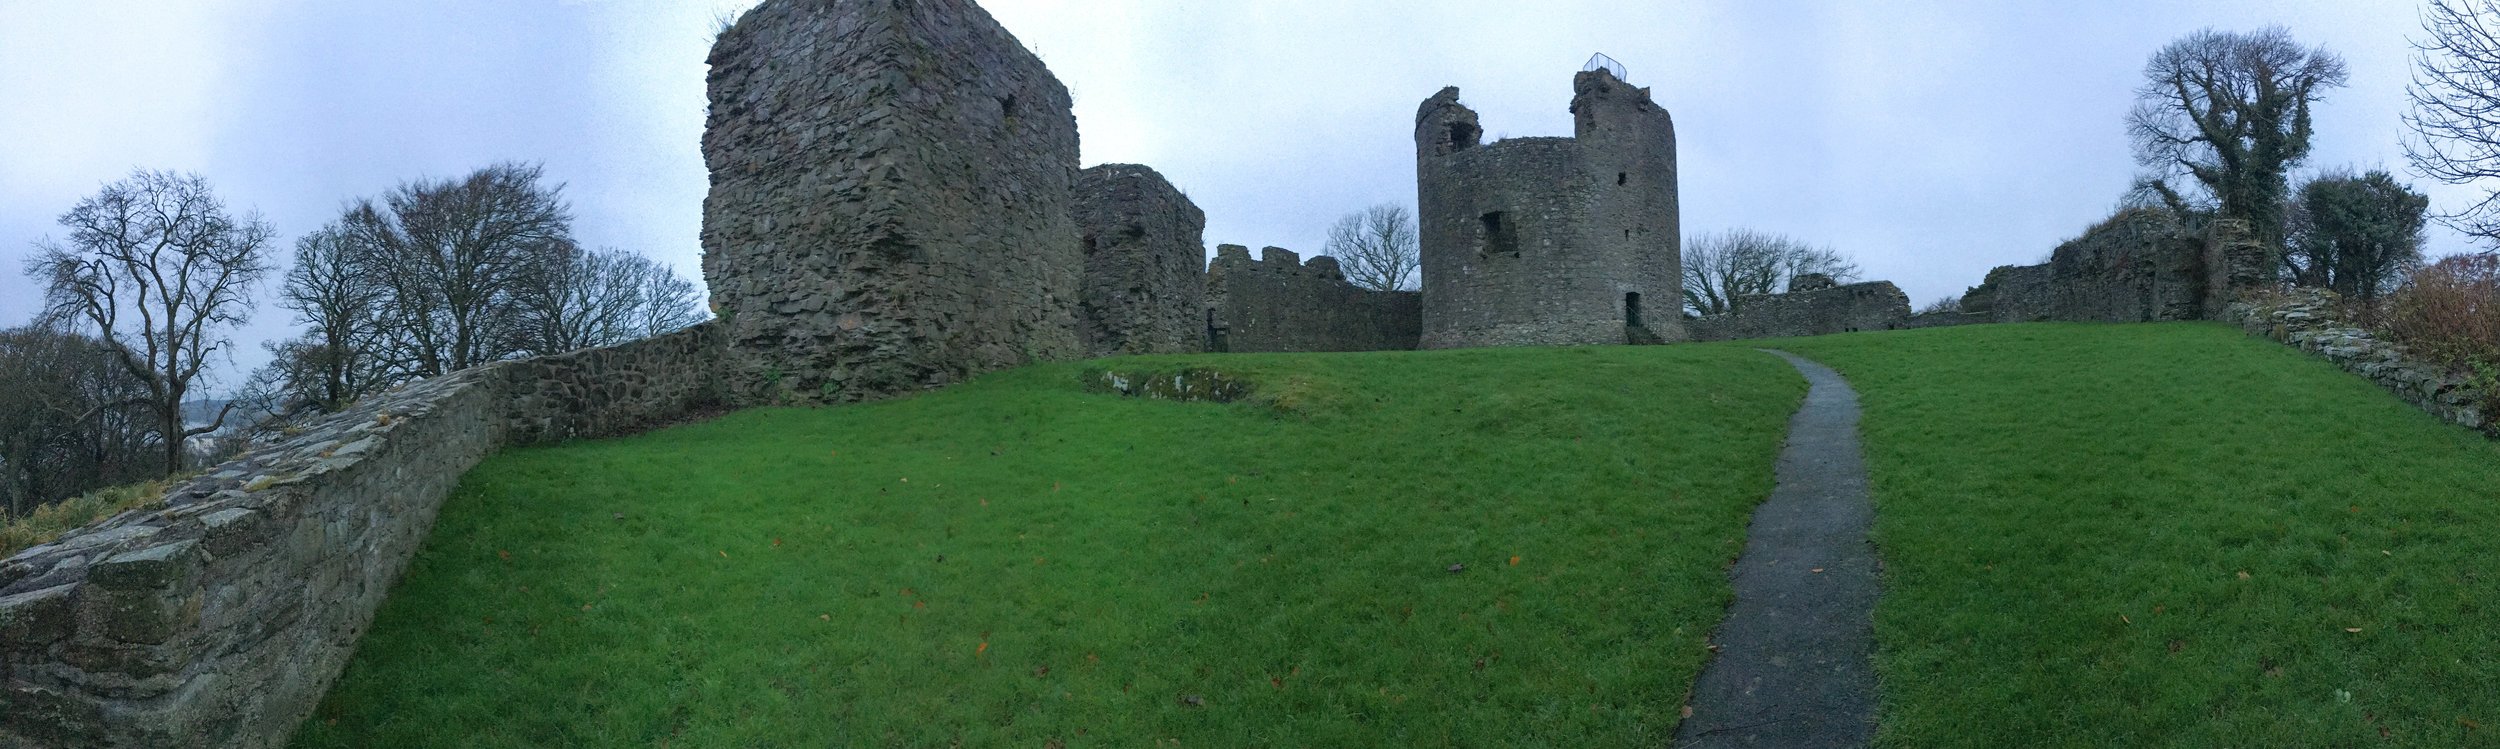 dundrum castle; ireland; bri rinehart